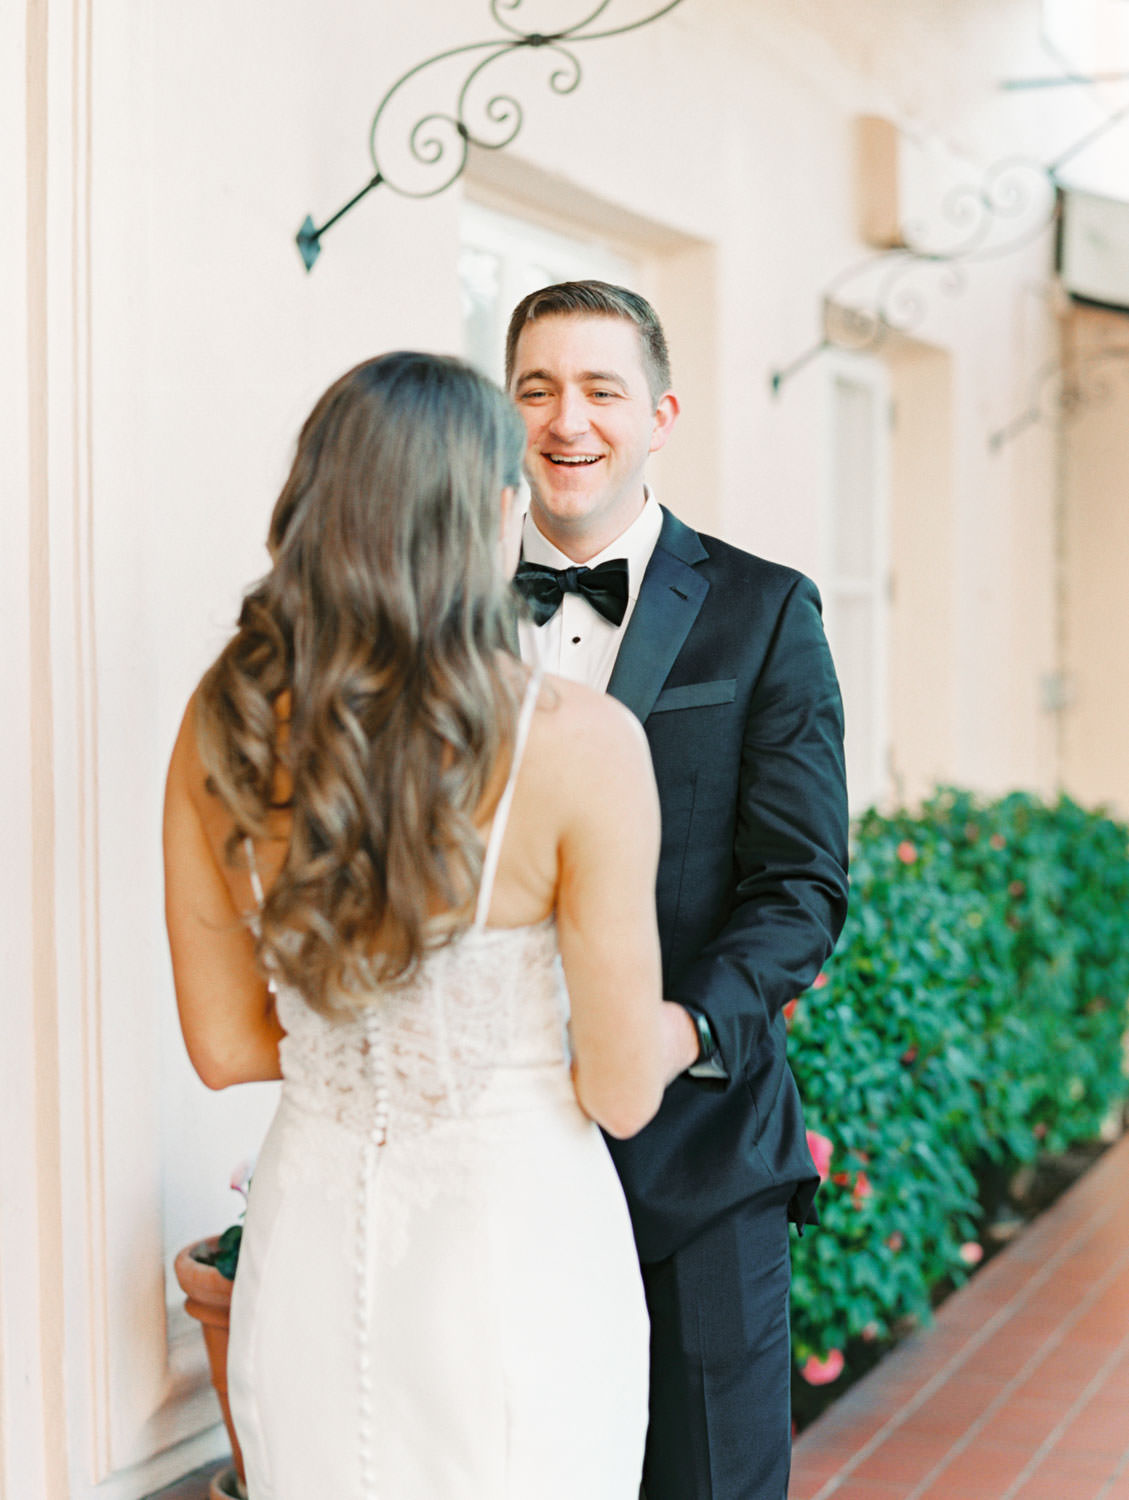 Bride and groom first look in front of pink wall, Intimate Wedding at La Valencia Hotel in La Jolla by Cavin Elizabeth Photography